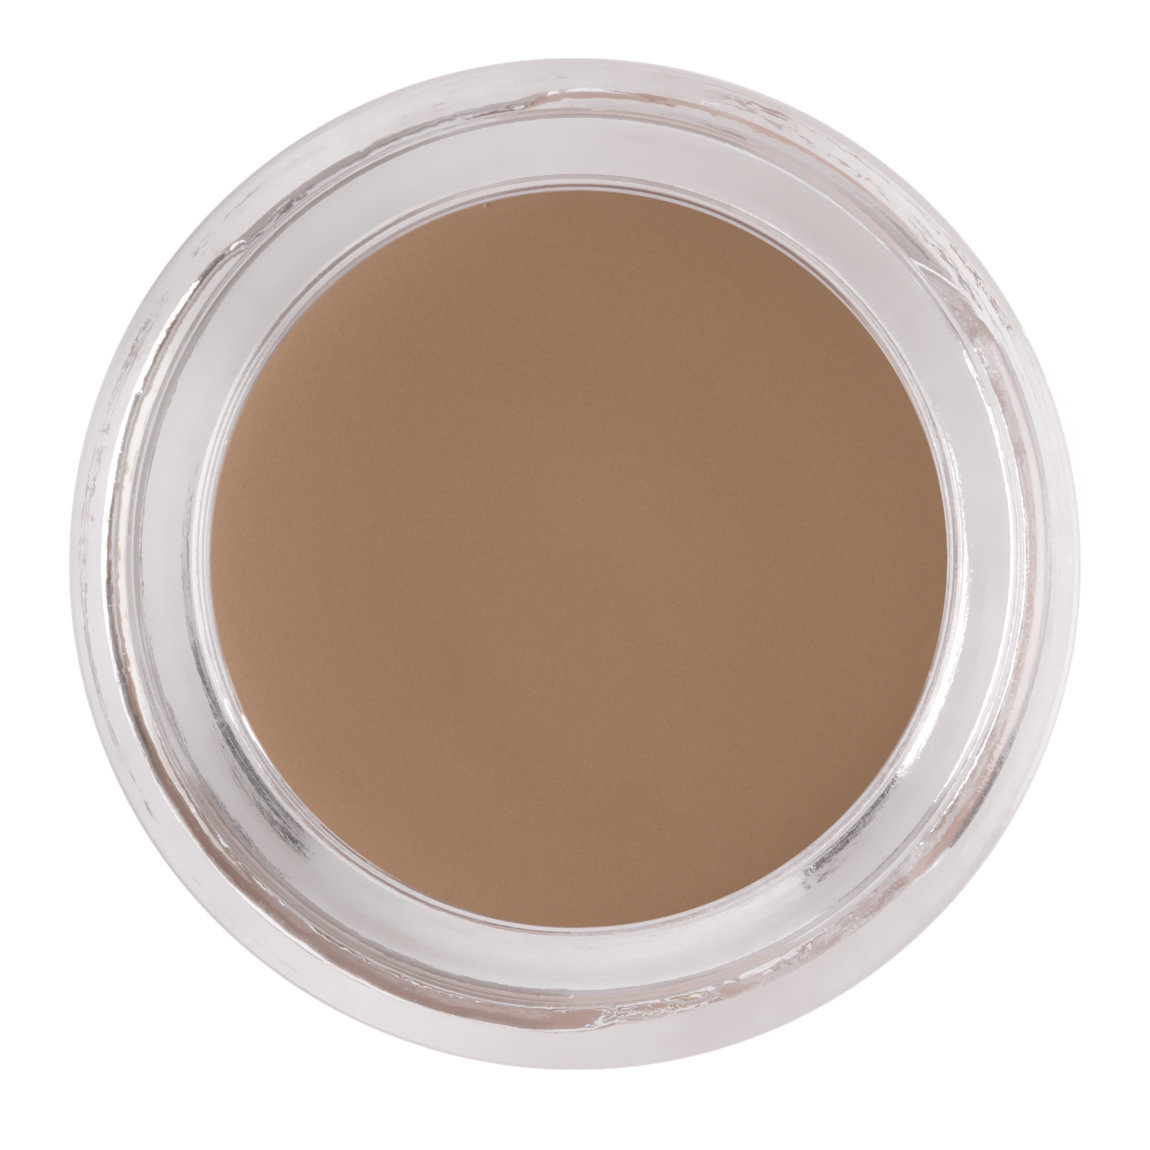 Anastasia Beverly Hills Dipbrow Pomade Taupe alternative view 1.